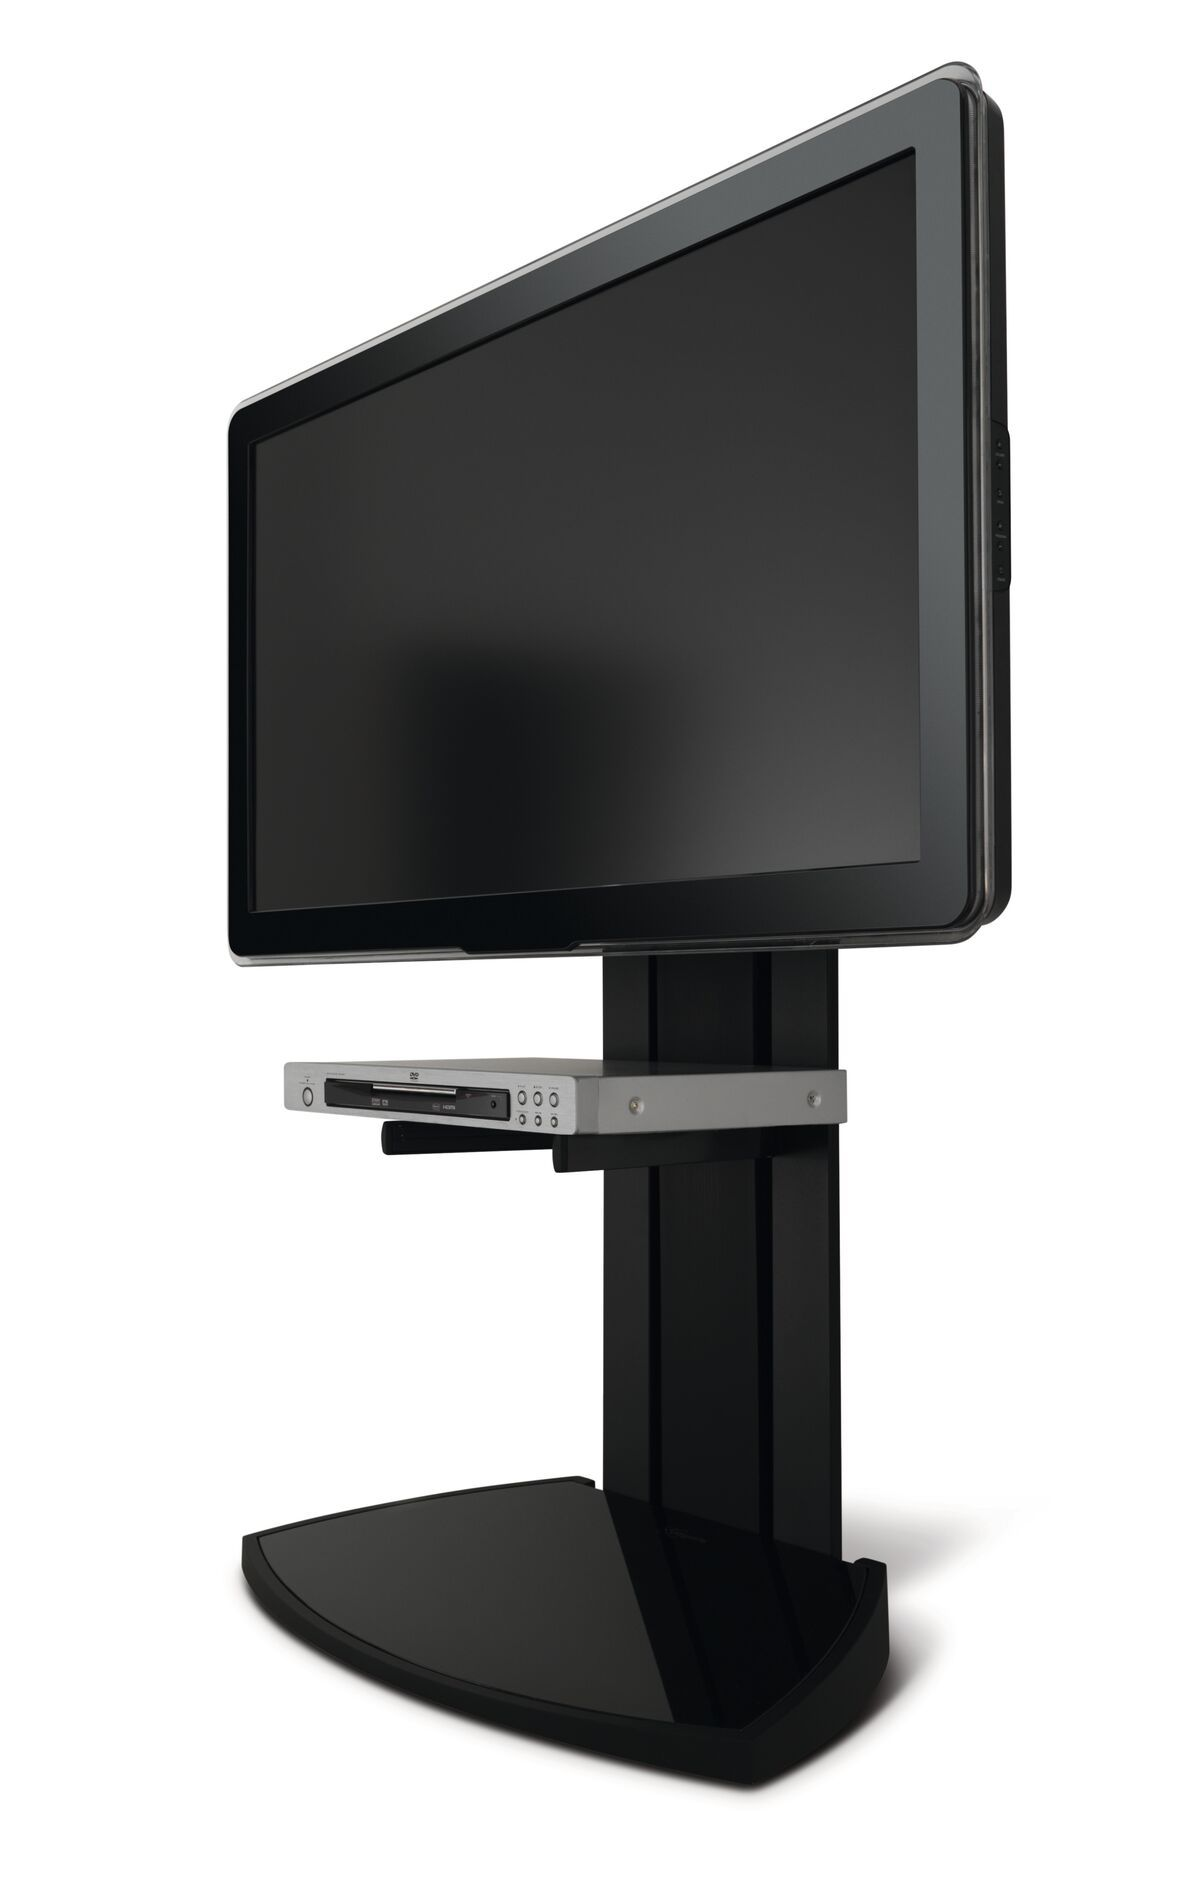 Vogel's EFF 8340 TV Floor Stand (black) - Suitable for 40 up to 65 inch TVs up to 45 kg - Application